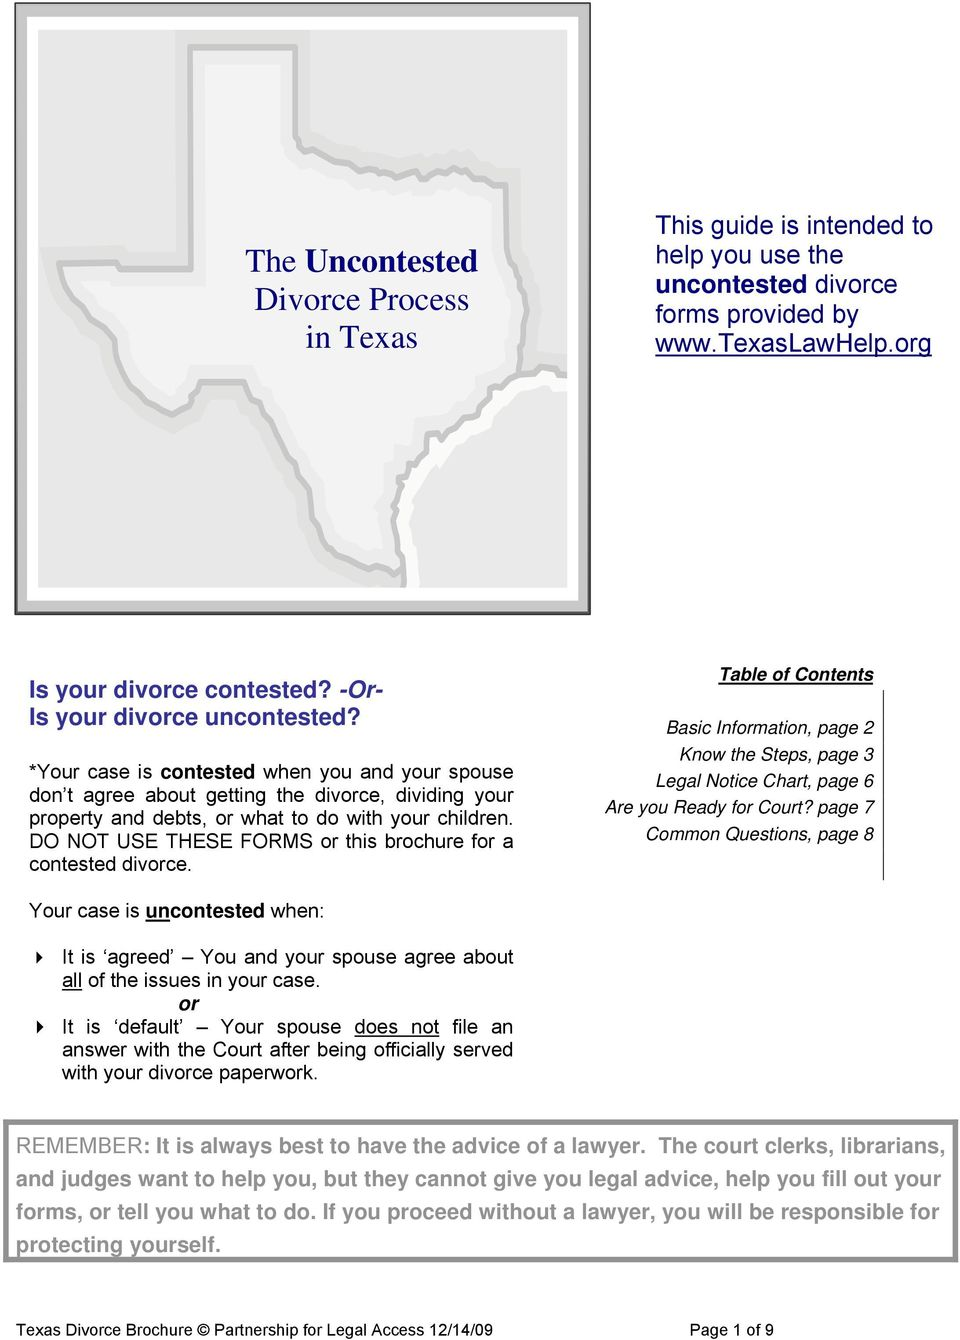 The Uncontested Divorce Process In Texas PDF - Help with legal paperwork